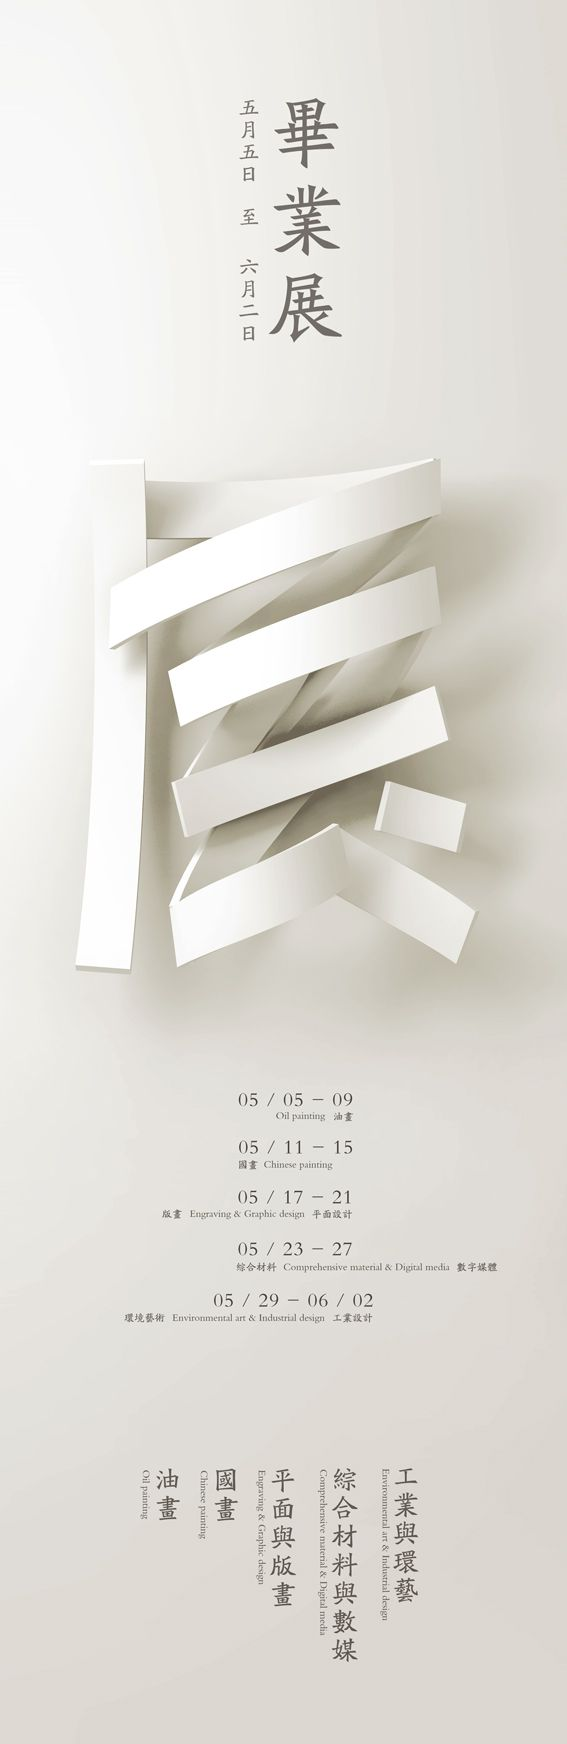 "Yao Yuan love graphic design Guangzhou / graphic designer  South China Normal University Graduation Exhibition Poster Design ""Exhibition""  May 5, 2013 ------ June 2, 2013"